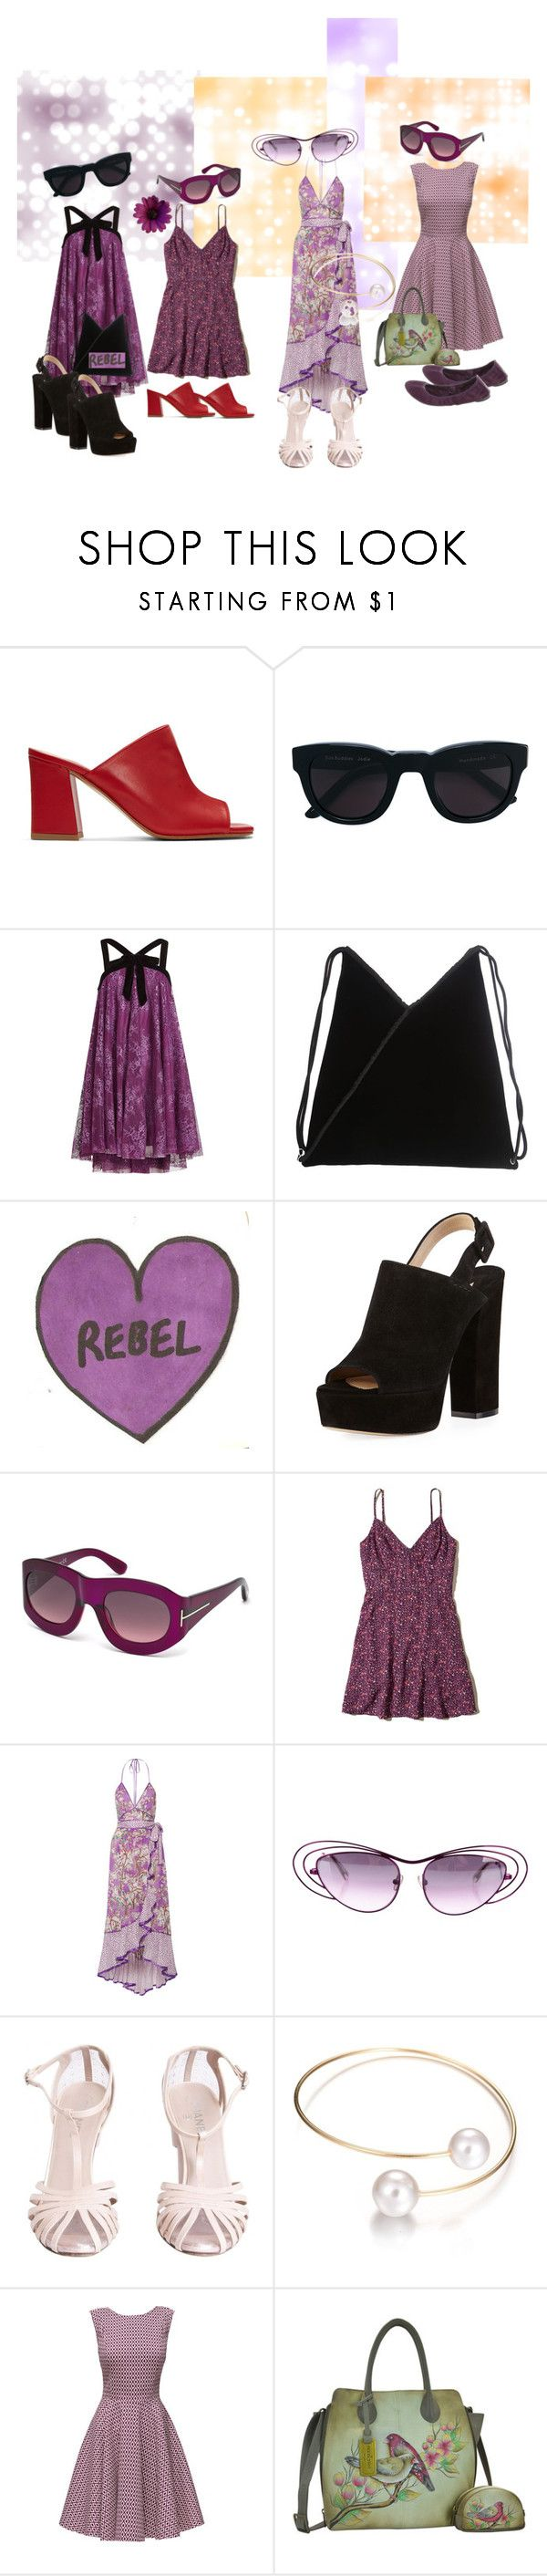 """Purple Reign"" by feralkind ❤ liked on Polyvore featuring Maryam Nassir Zadeh, Sun Buddies, Philosophy di Lorenzo Serafini, MM6 Maison Margiela, Paul Andrew, Tom Ford, Hollister Co., Marc Jacobs, Linda Farrow and Chanel"